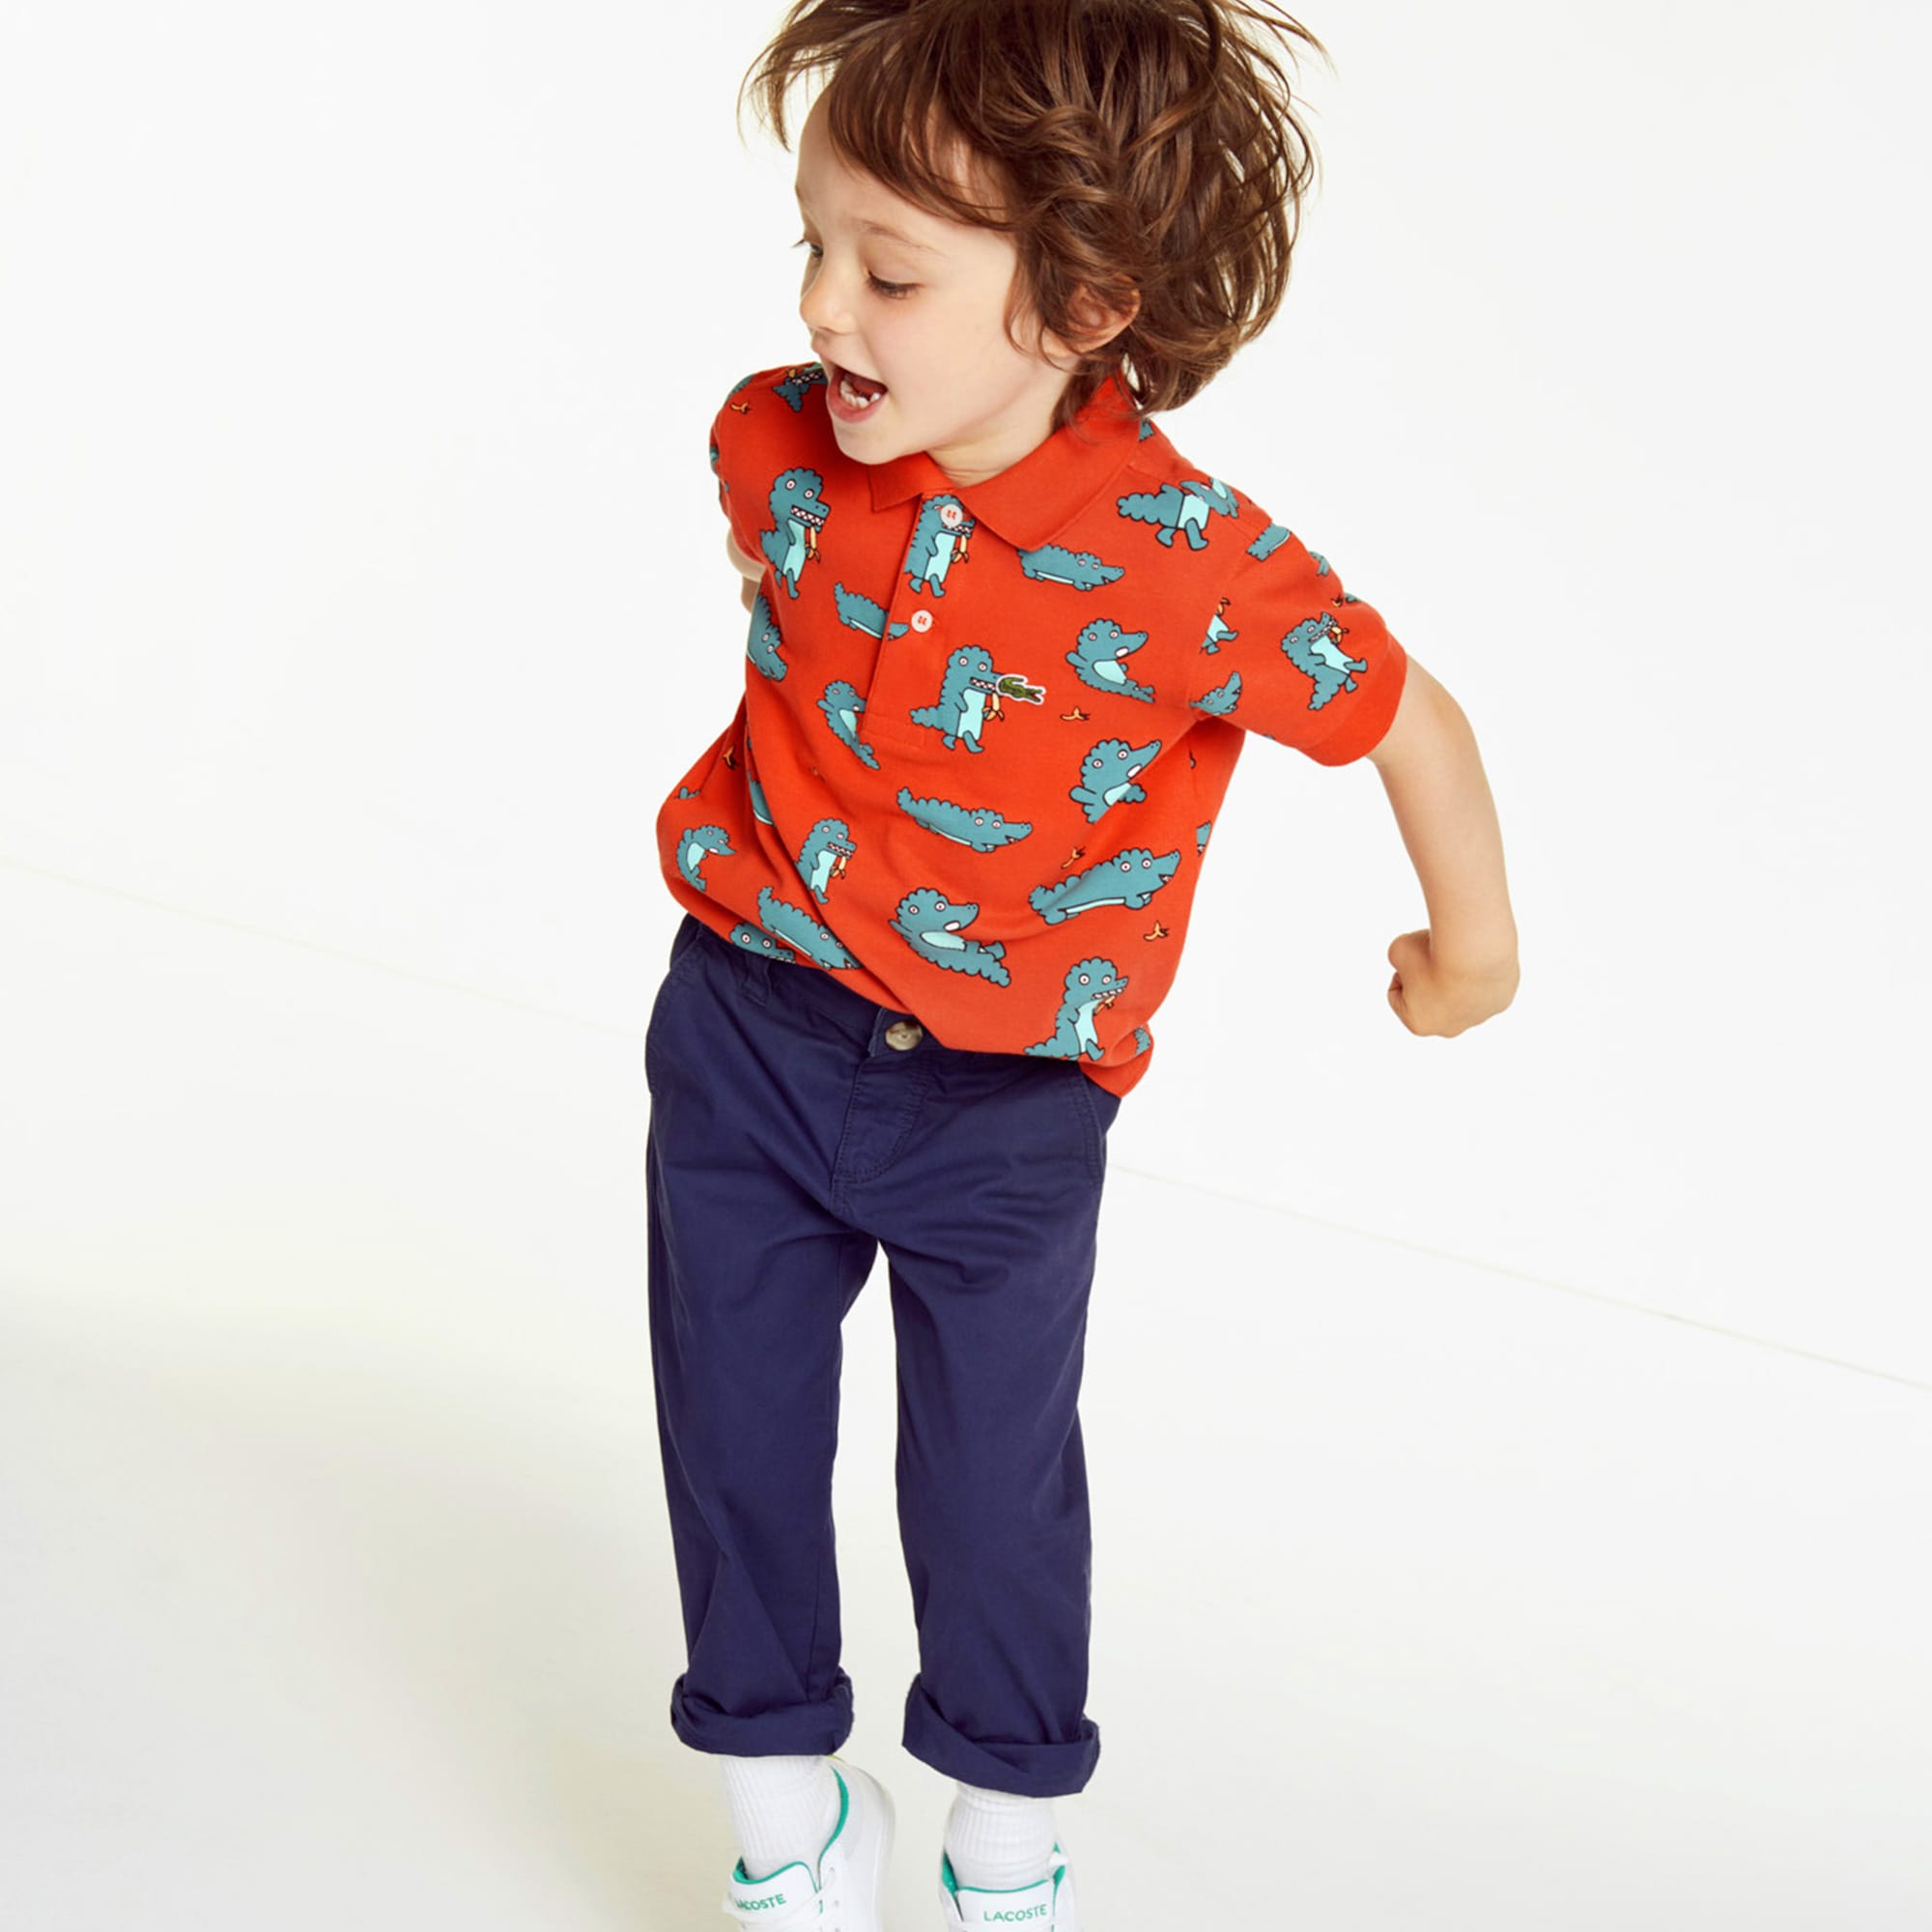 a65b4f6f0 Clothing & Shoes collection | Kids Fashion | LACOSTE